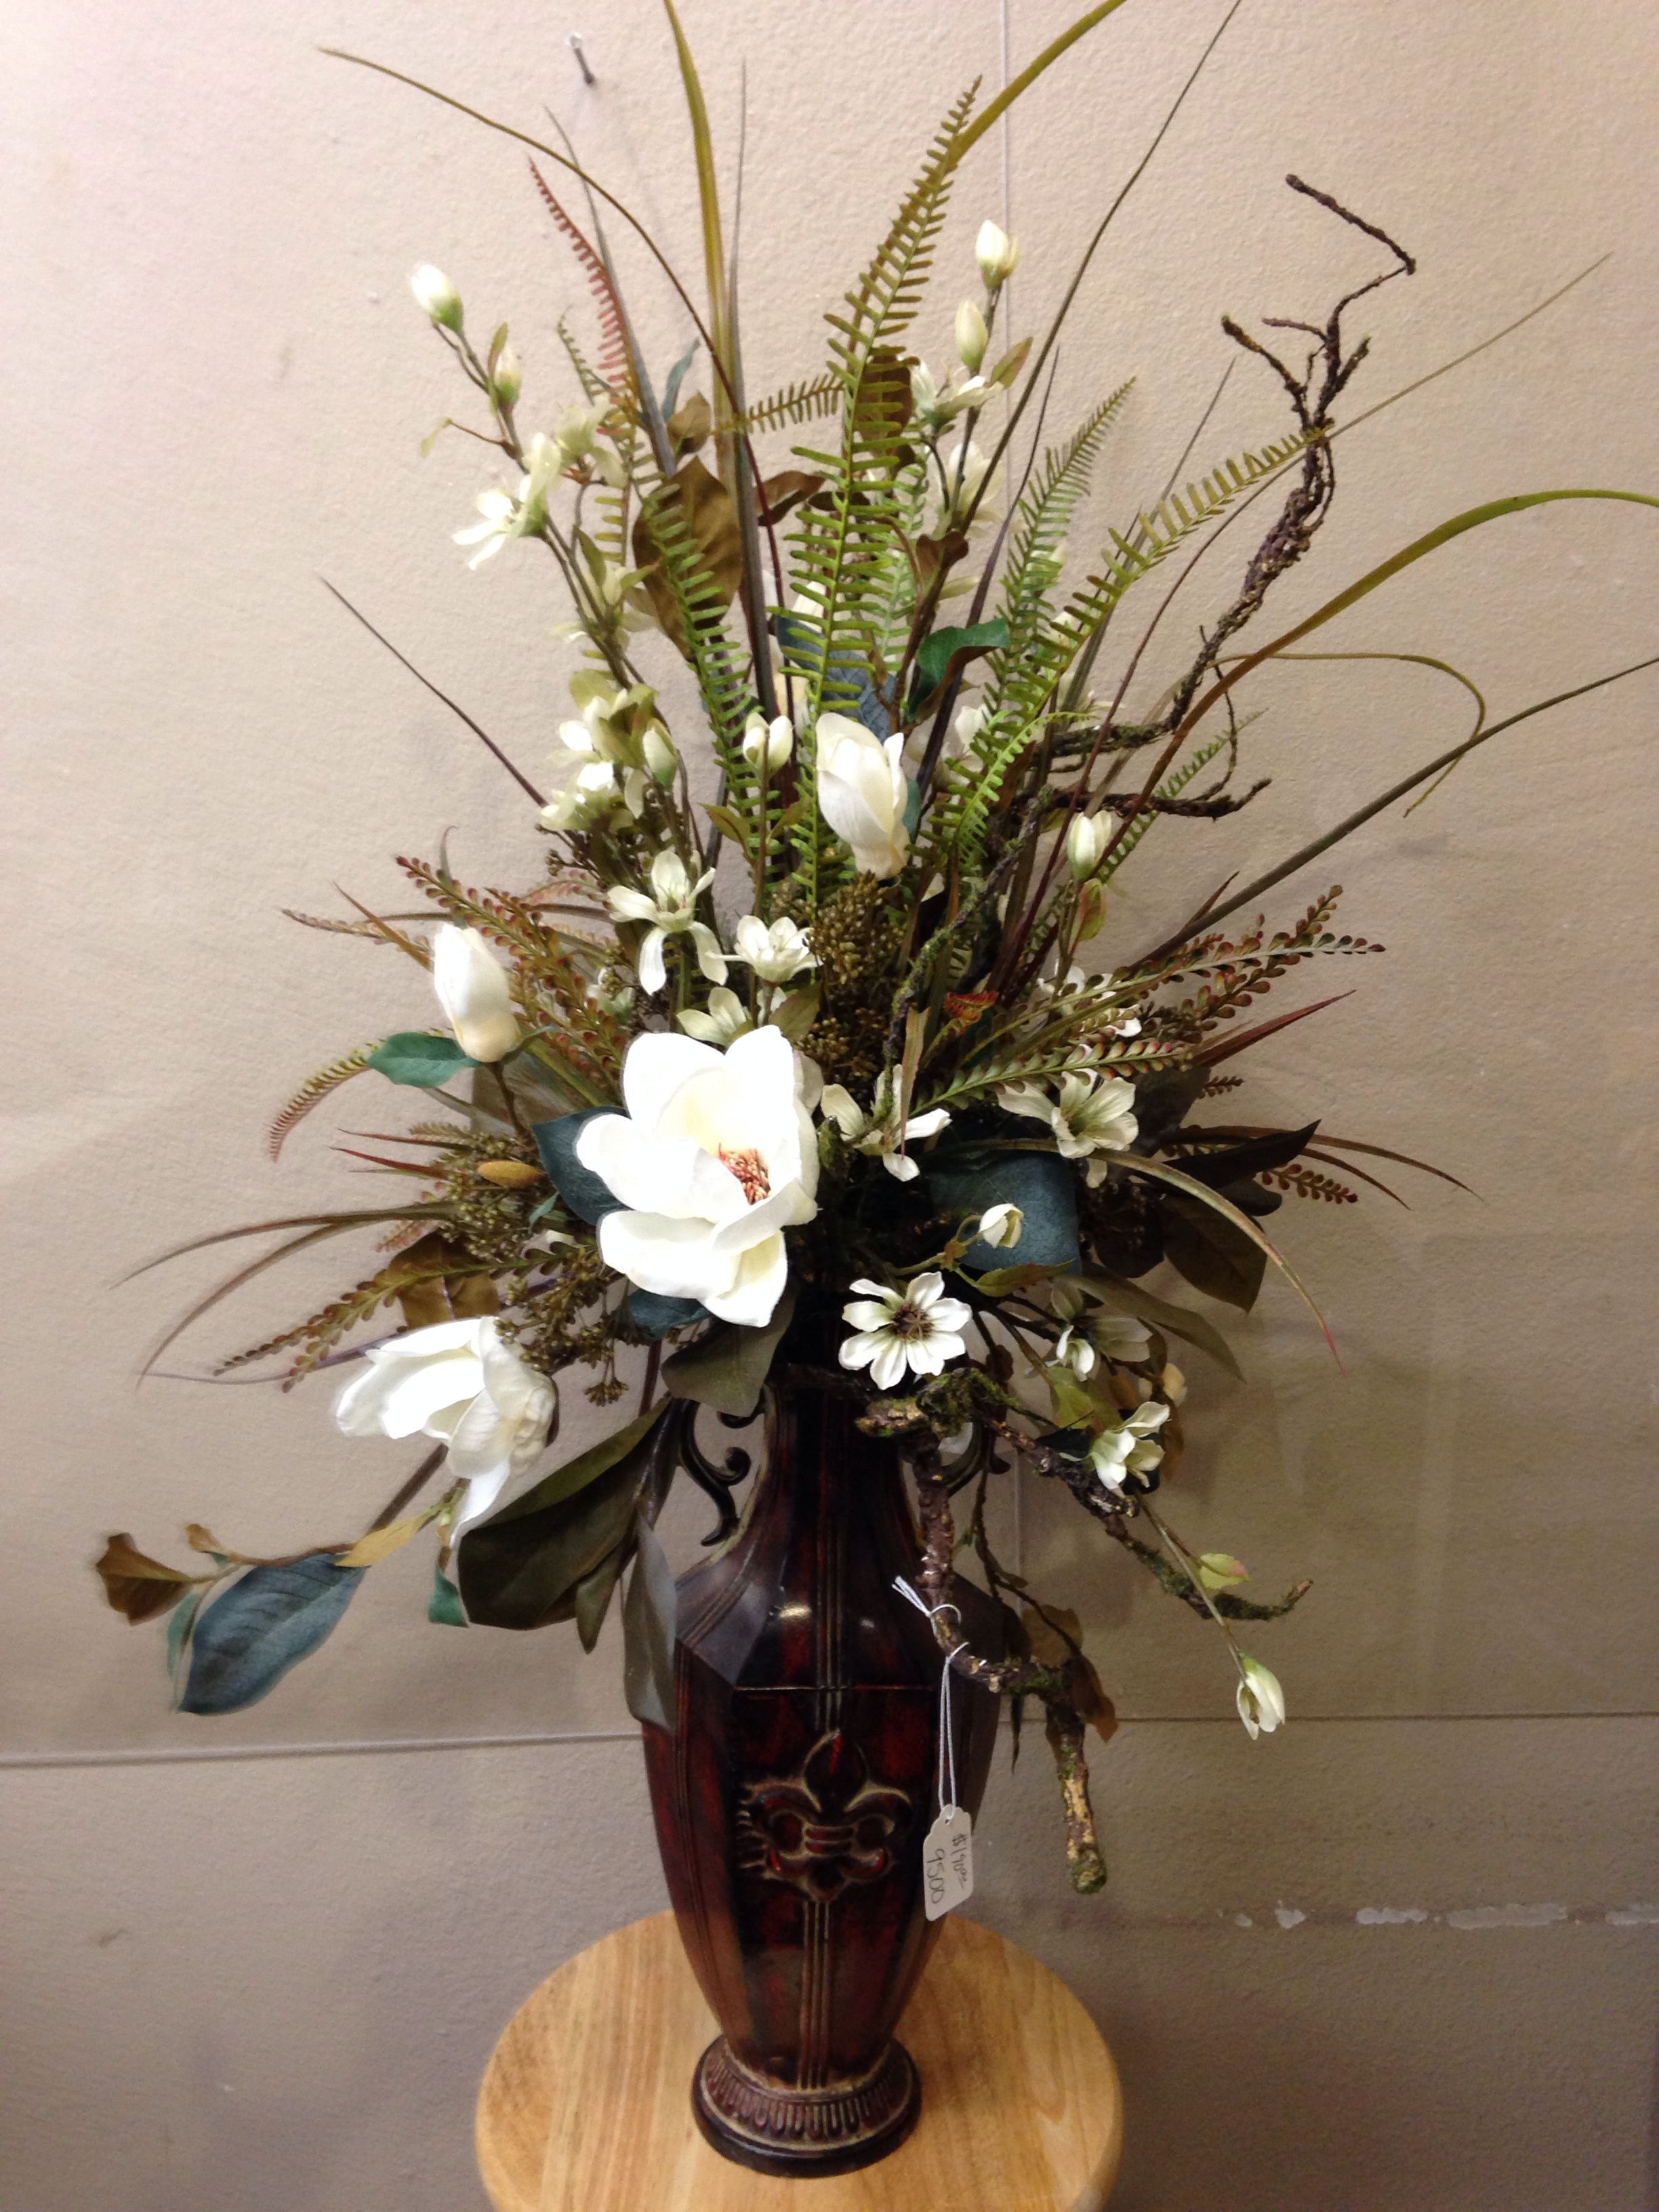 Everyday Magnolia Table Piece Dried Flower Arrangements Artificial Floral Arrangements Fall Floral Arrangements